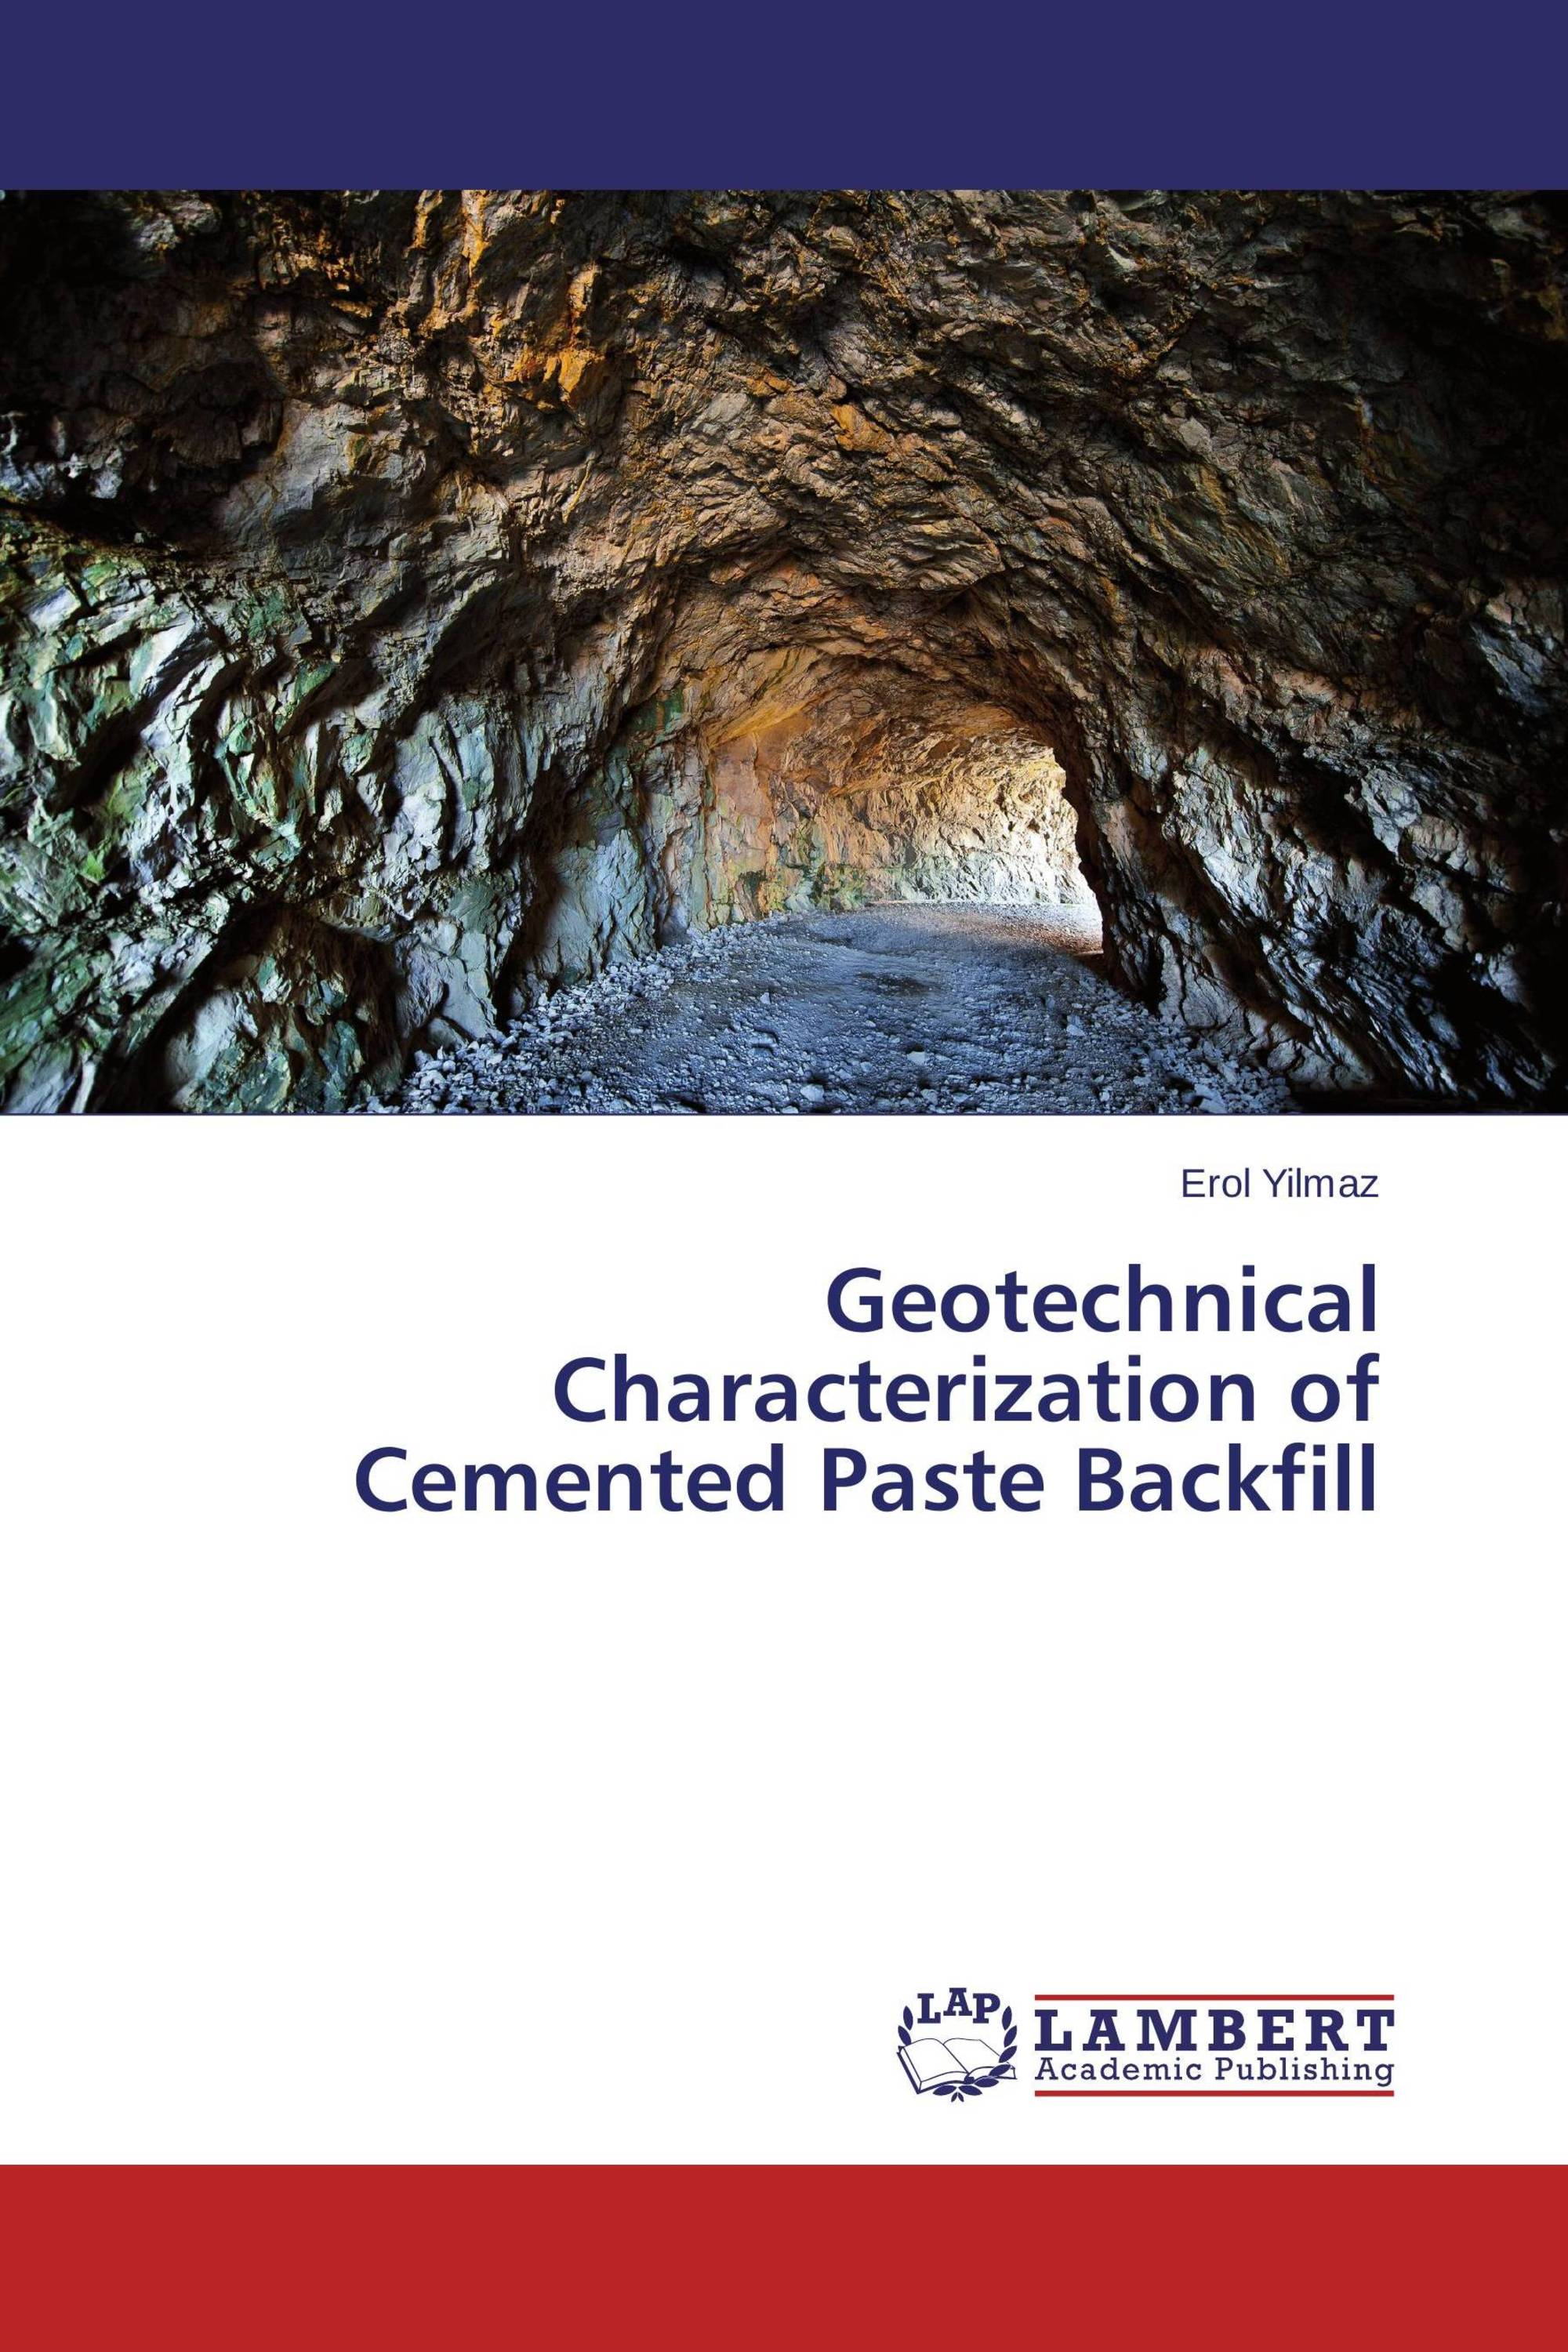 Geotechnical Characterization of Cemented Paste Backfill